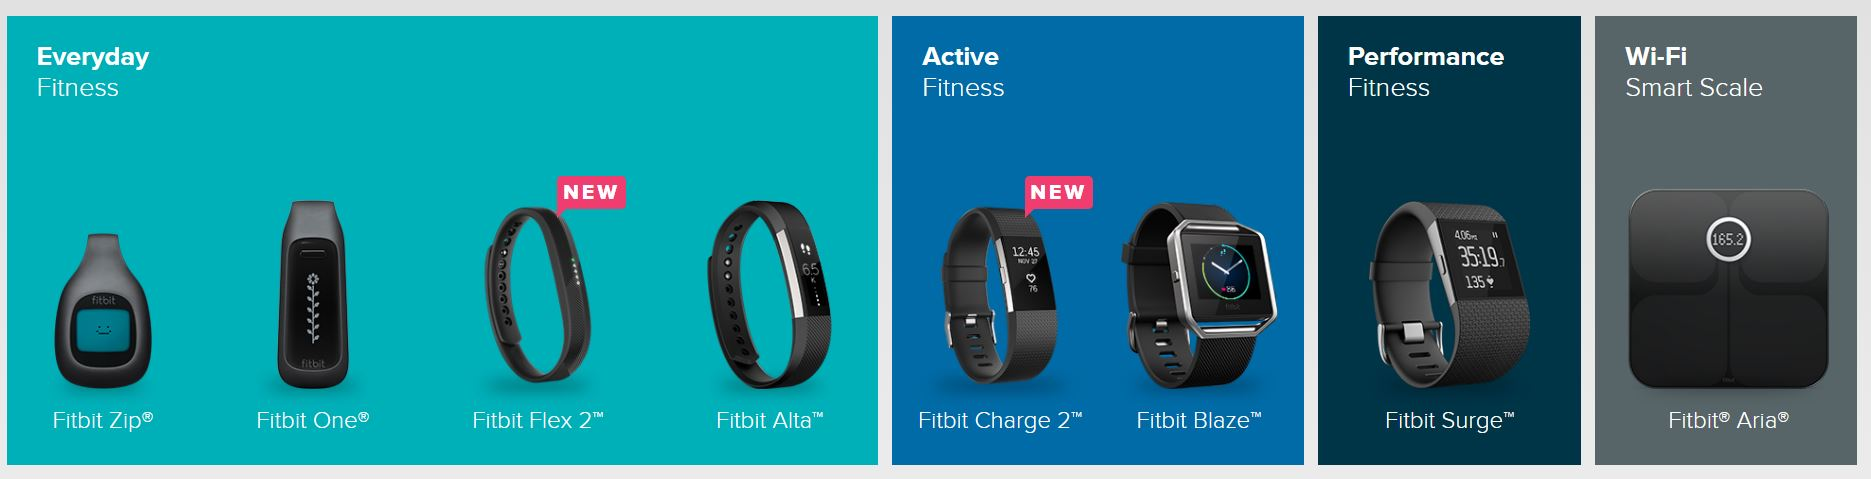 Figure 1. Fitbit's 2016 product offerings, categorized by activity level [1].